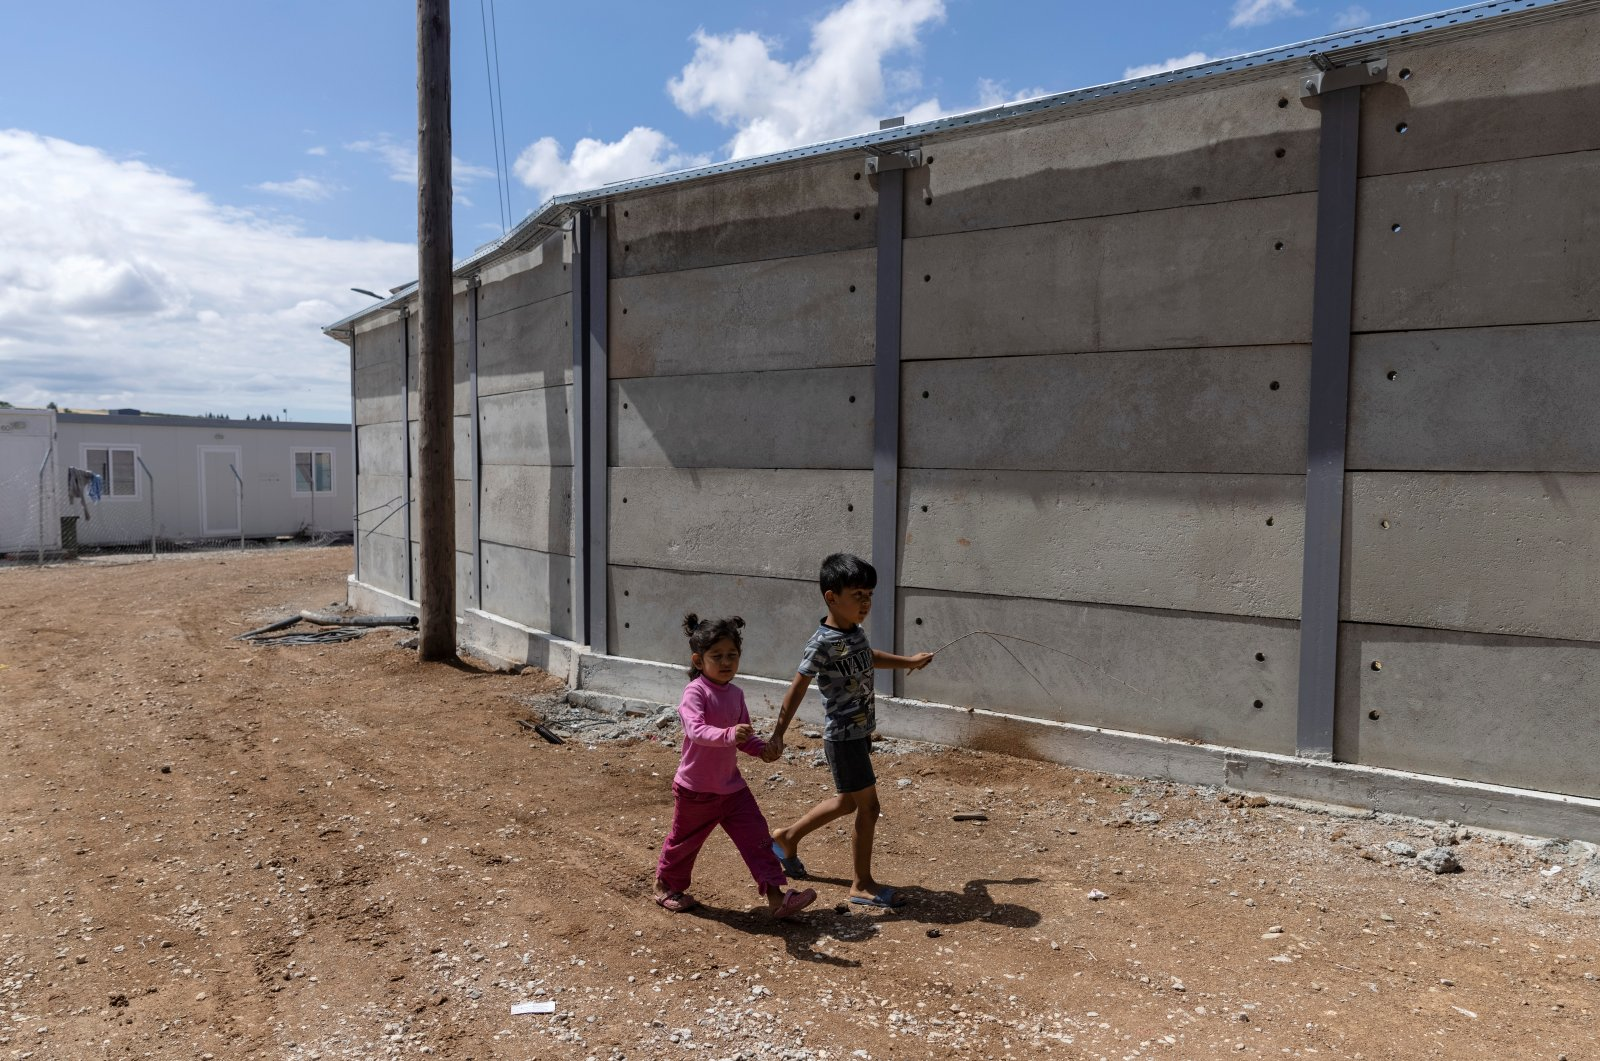 Children walk next to a newly built concrete wall inside the Ritsona camp for refugees and migrants, in Greece, June 15, 2021. (Reuters Photo)